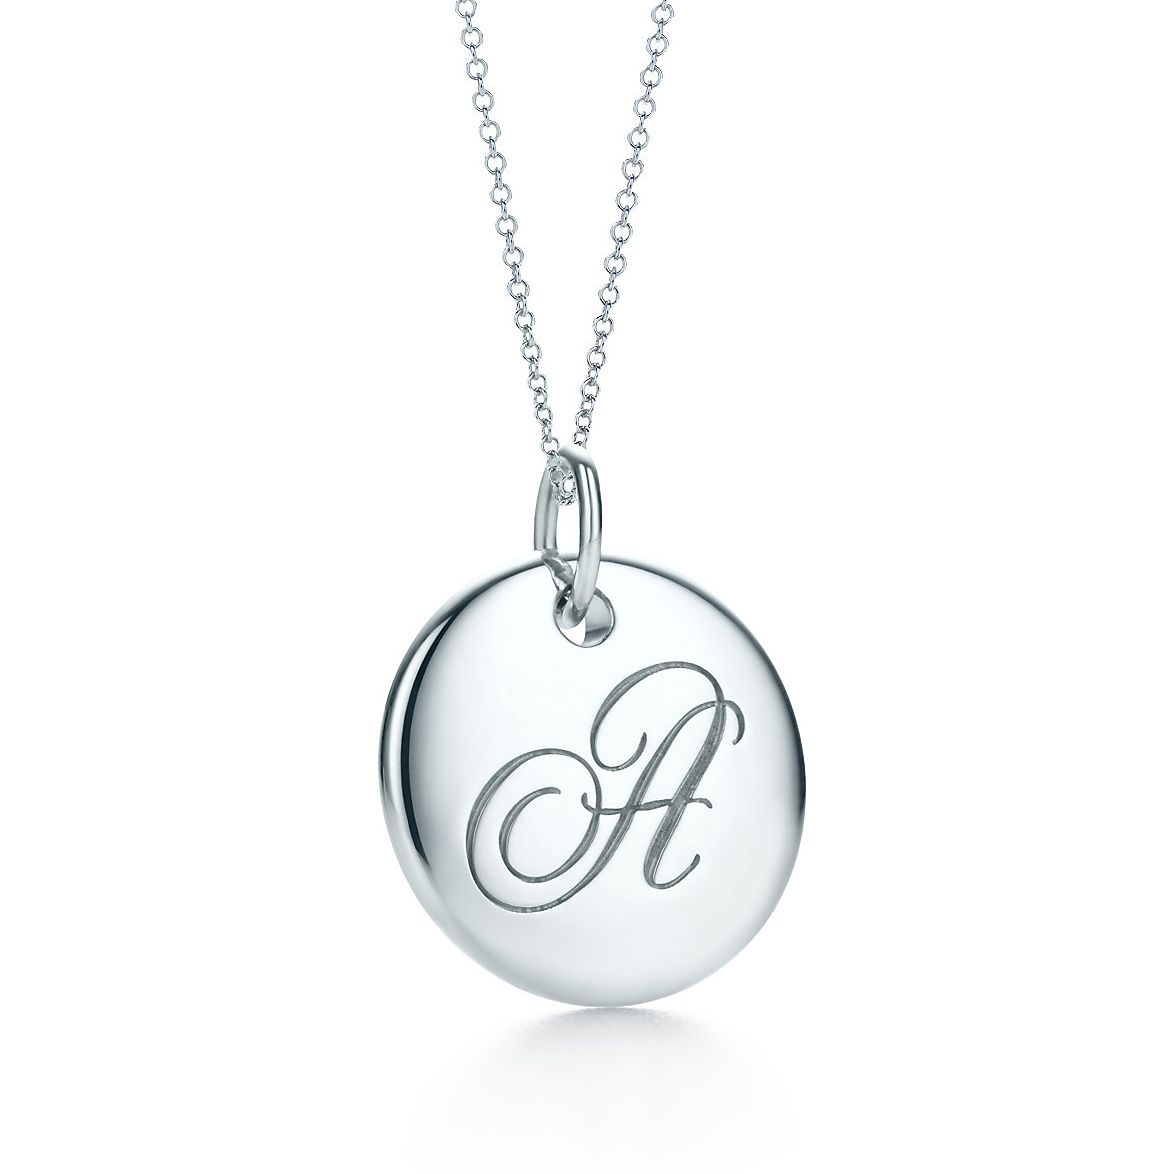 Charmes Tiffany Charme Alphabet En Lettres D'argent Sterling Az Disponible - Taille Y Tiffany & Co. KBmwFoA